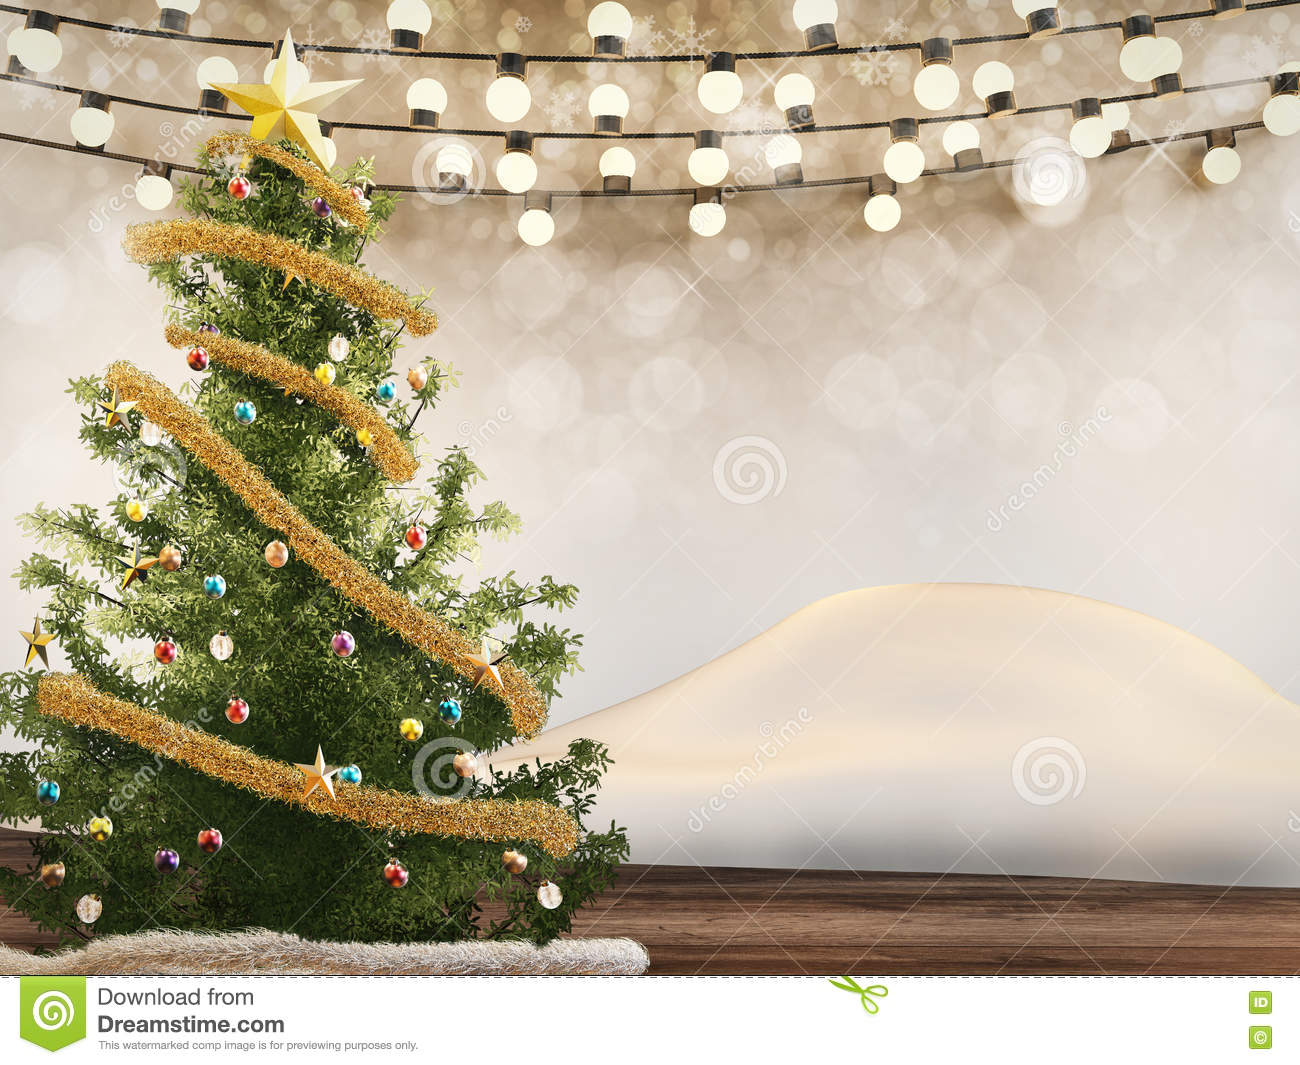 Images of How To Decorate With Christmas Ornaments - Home ...